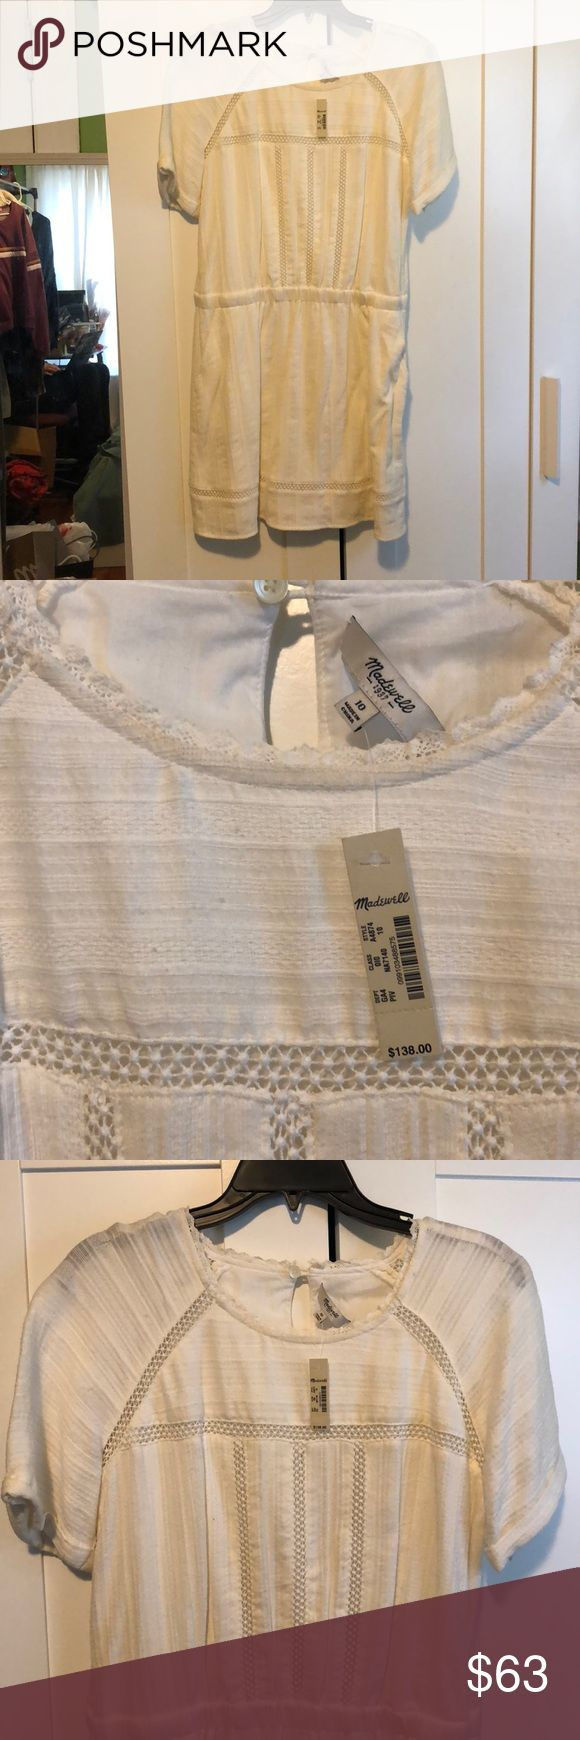 White madewell dress with pockets unworn size 10 Beautiful never been worn madewell dress size 10. Can be worn casual or to any event. Still has the tag. Below the knee dress with pockets and beautiful detail and embroidery. Elasticated waistband, runs big. Madewell Dresses